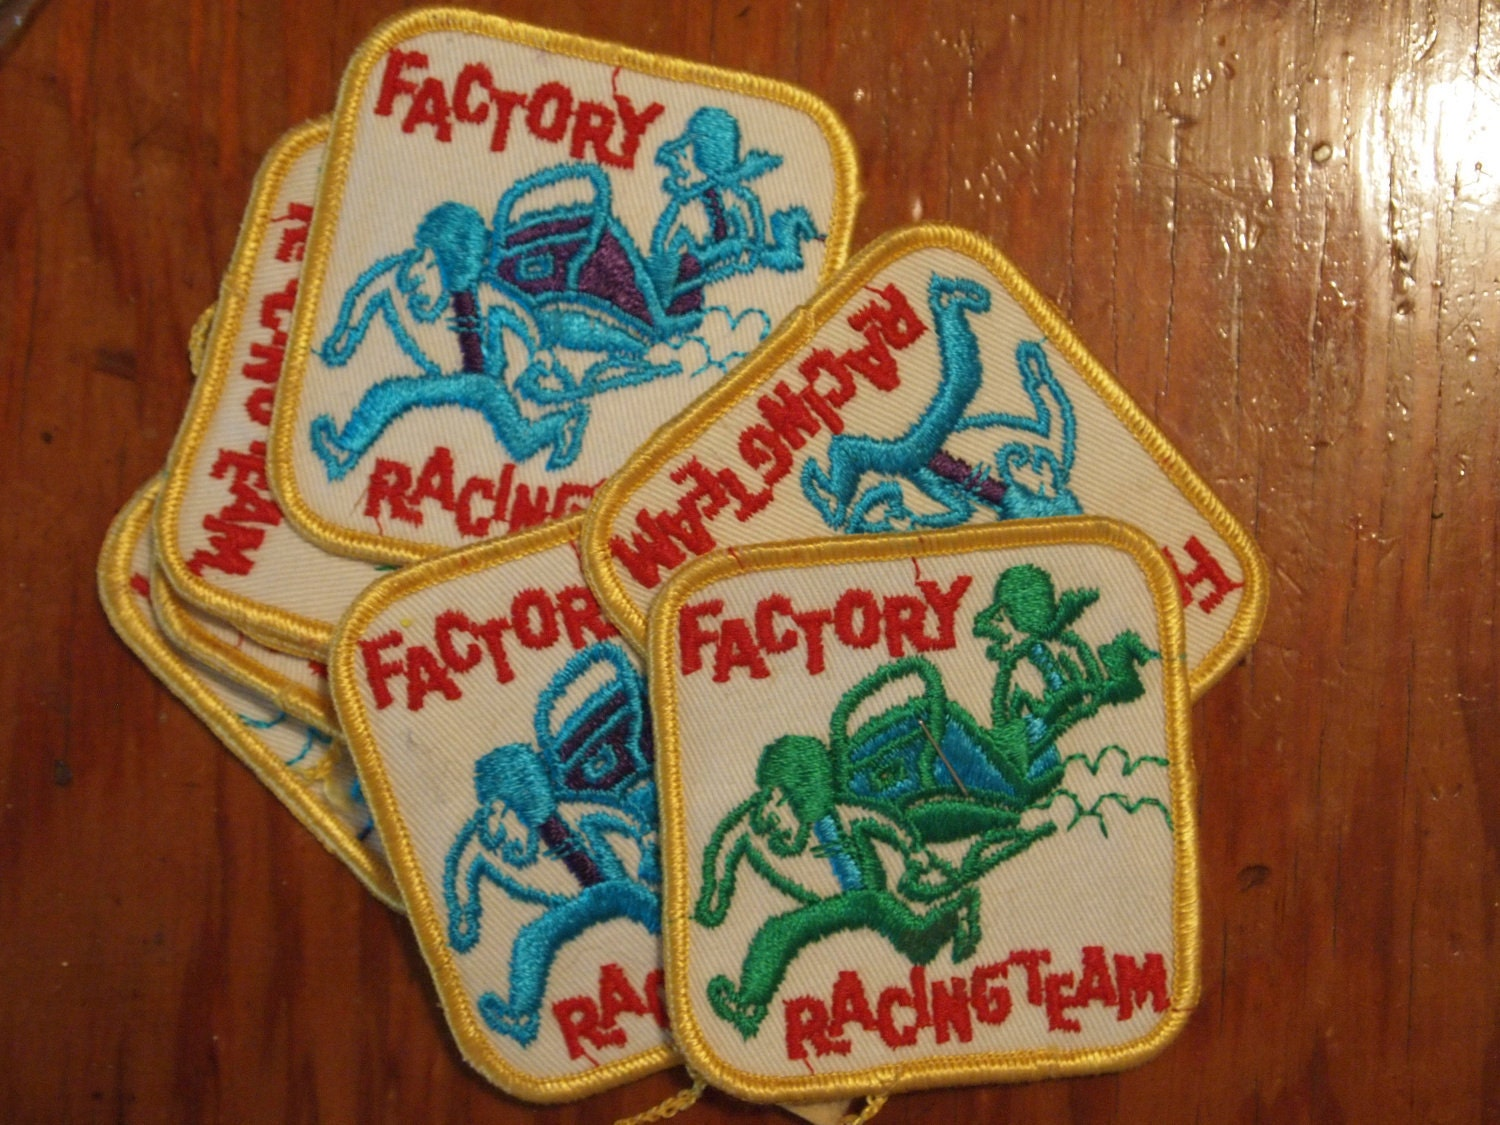 Vintage Racing Team Patches 9 pieces Sew On 1970's. From atomicpassion